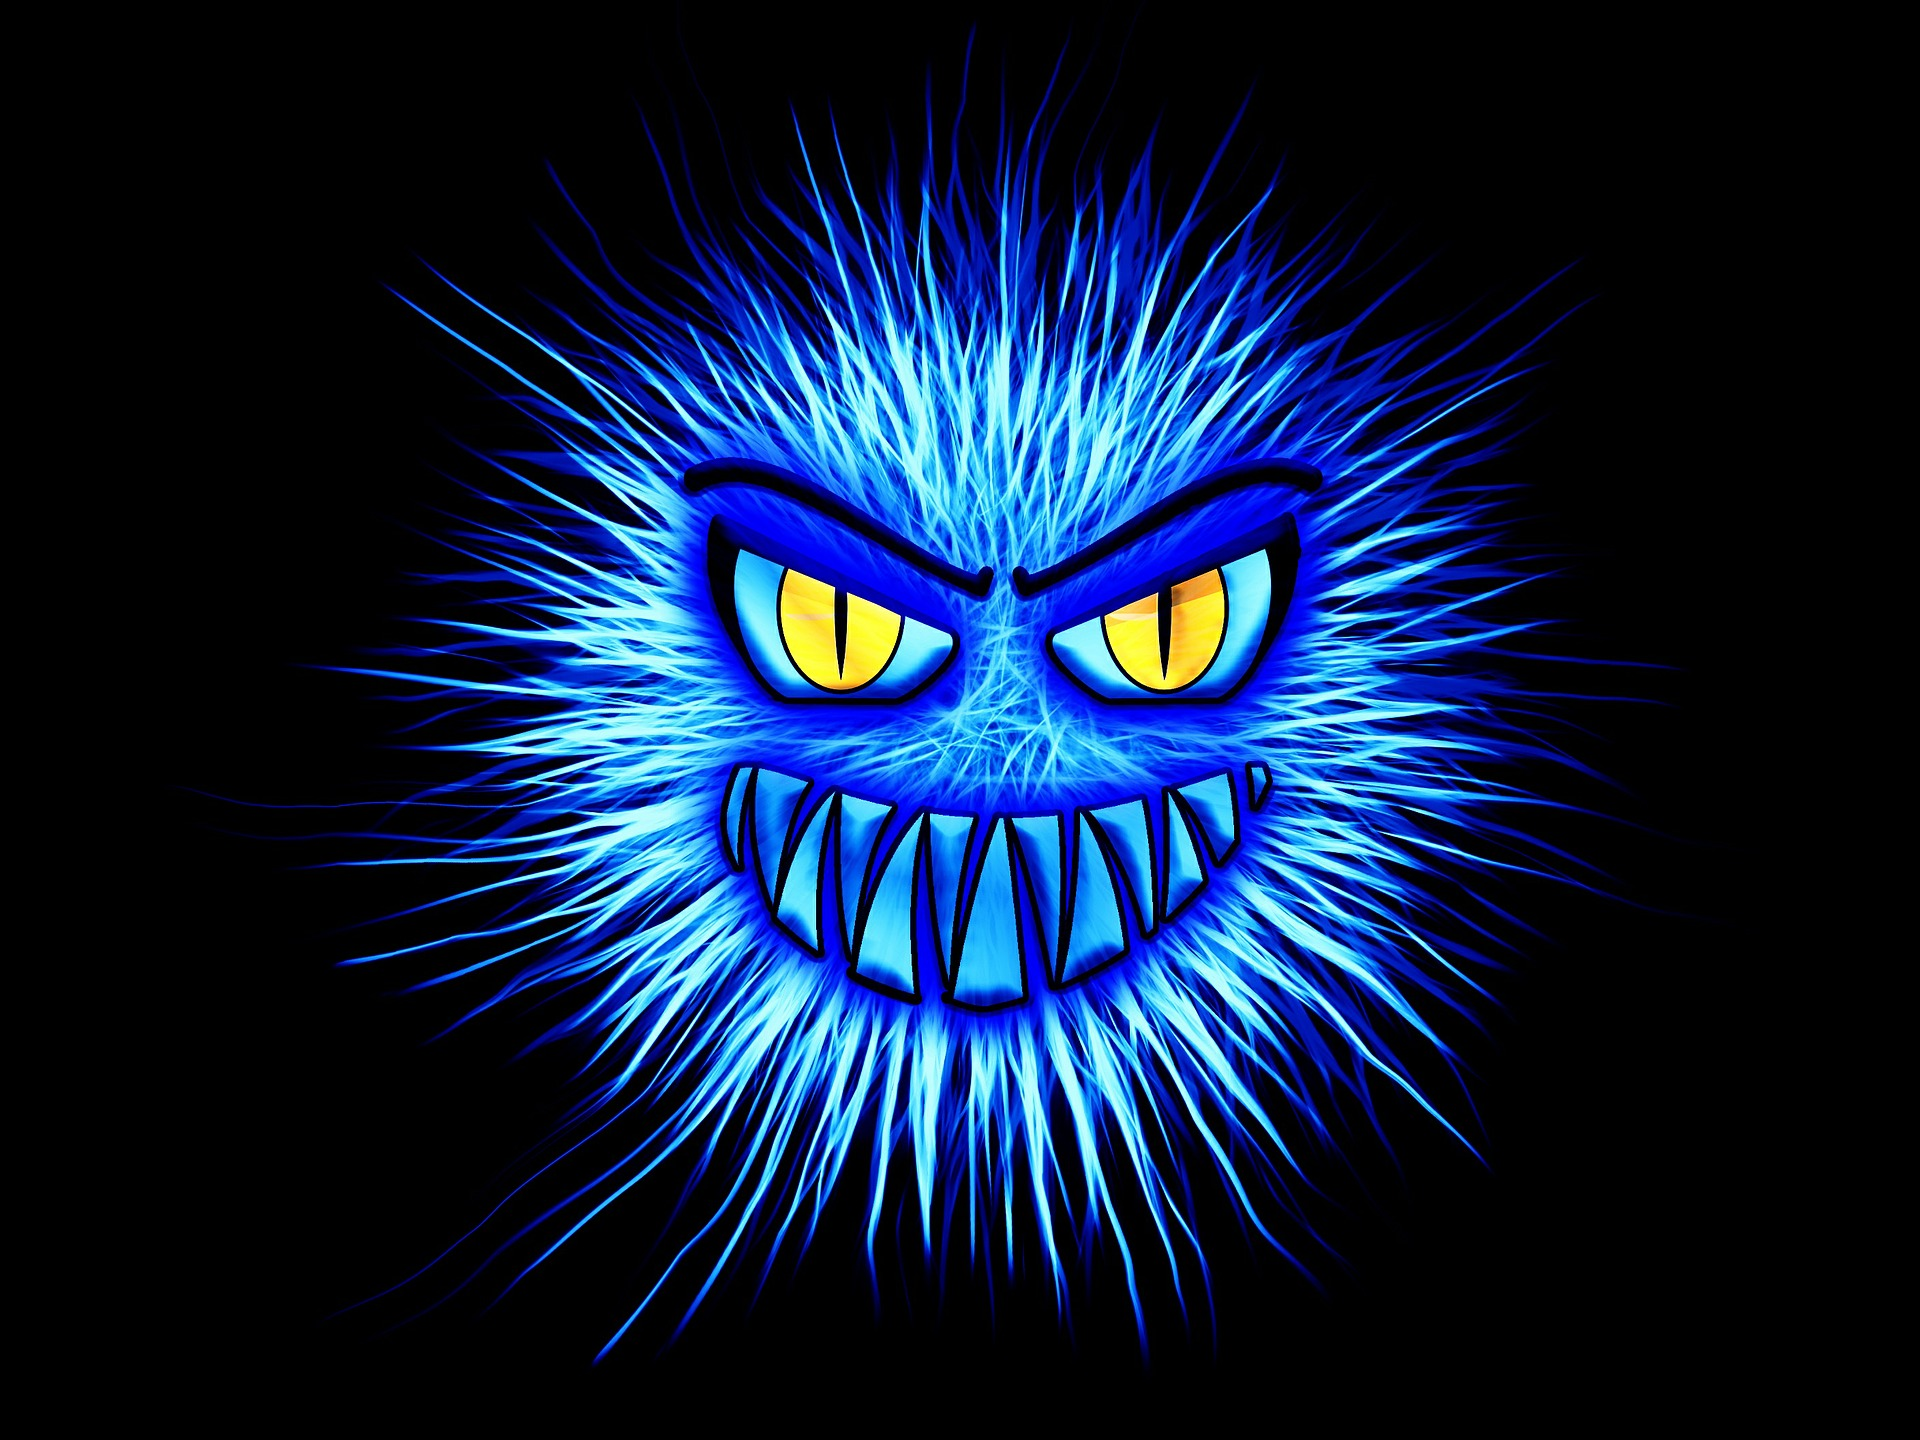 Caricature of a computer virus. It is blue and spiky and has yellow eyes with a grimace